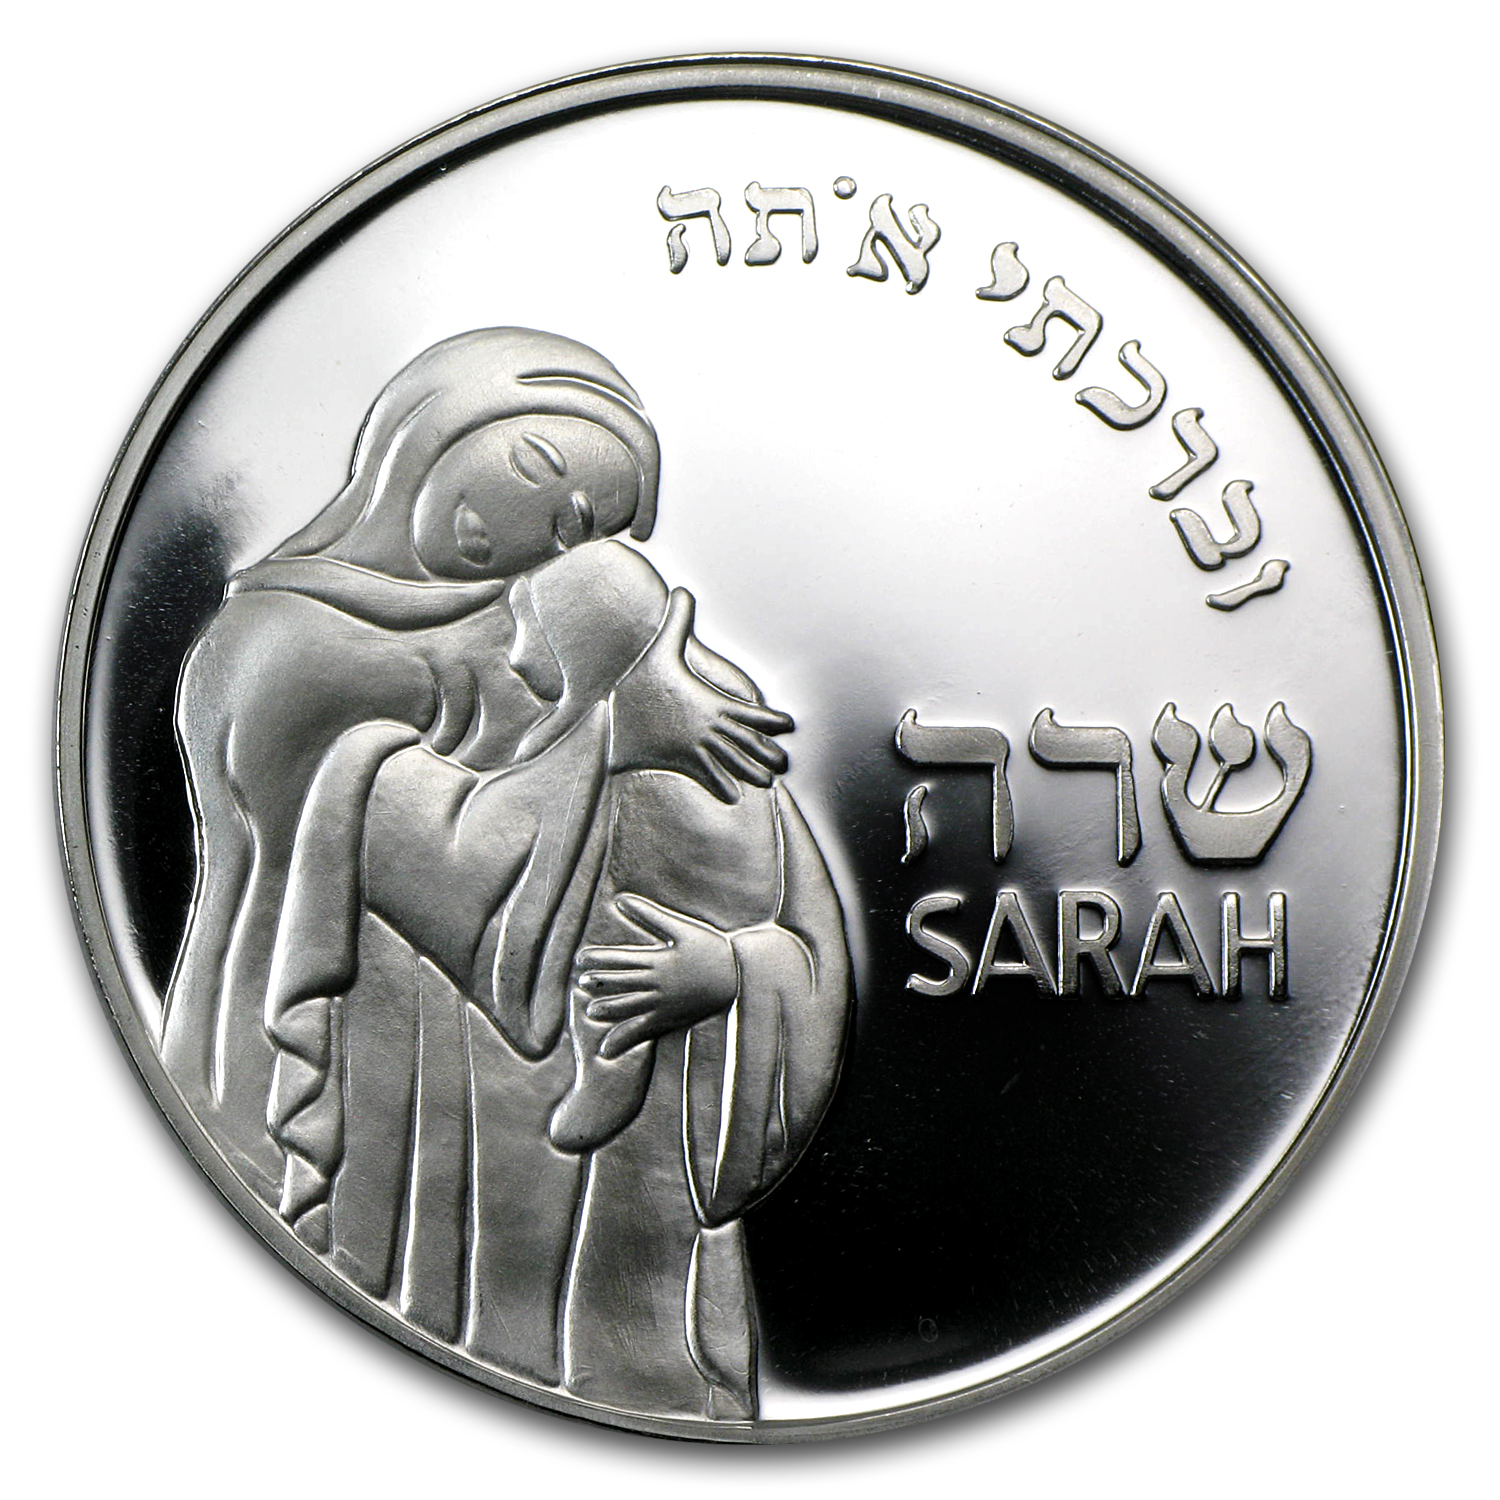 2007 Israel Sarah Silver Medal Proof (ASW .643)